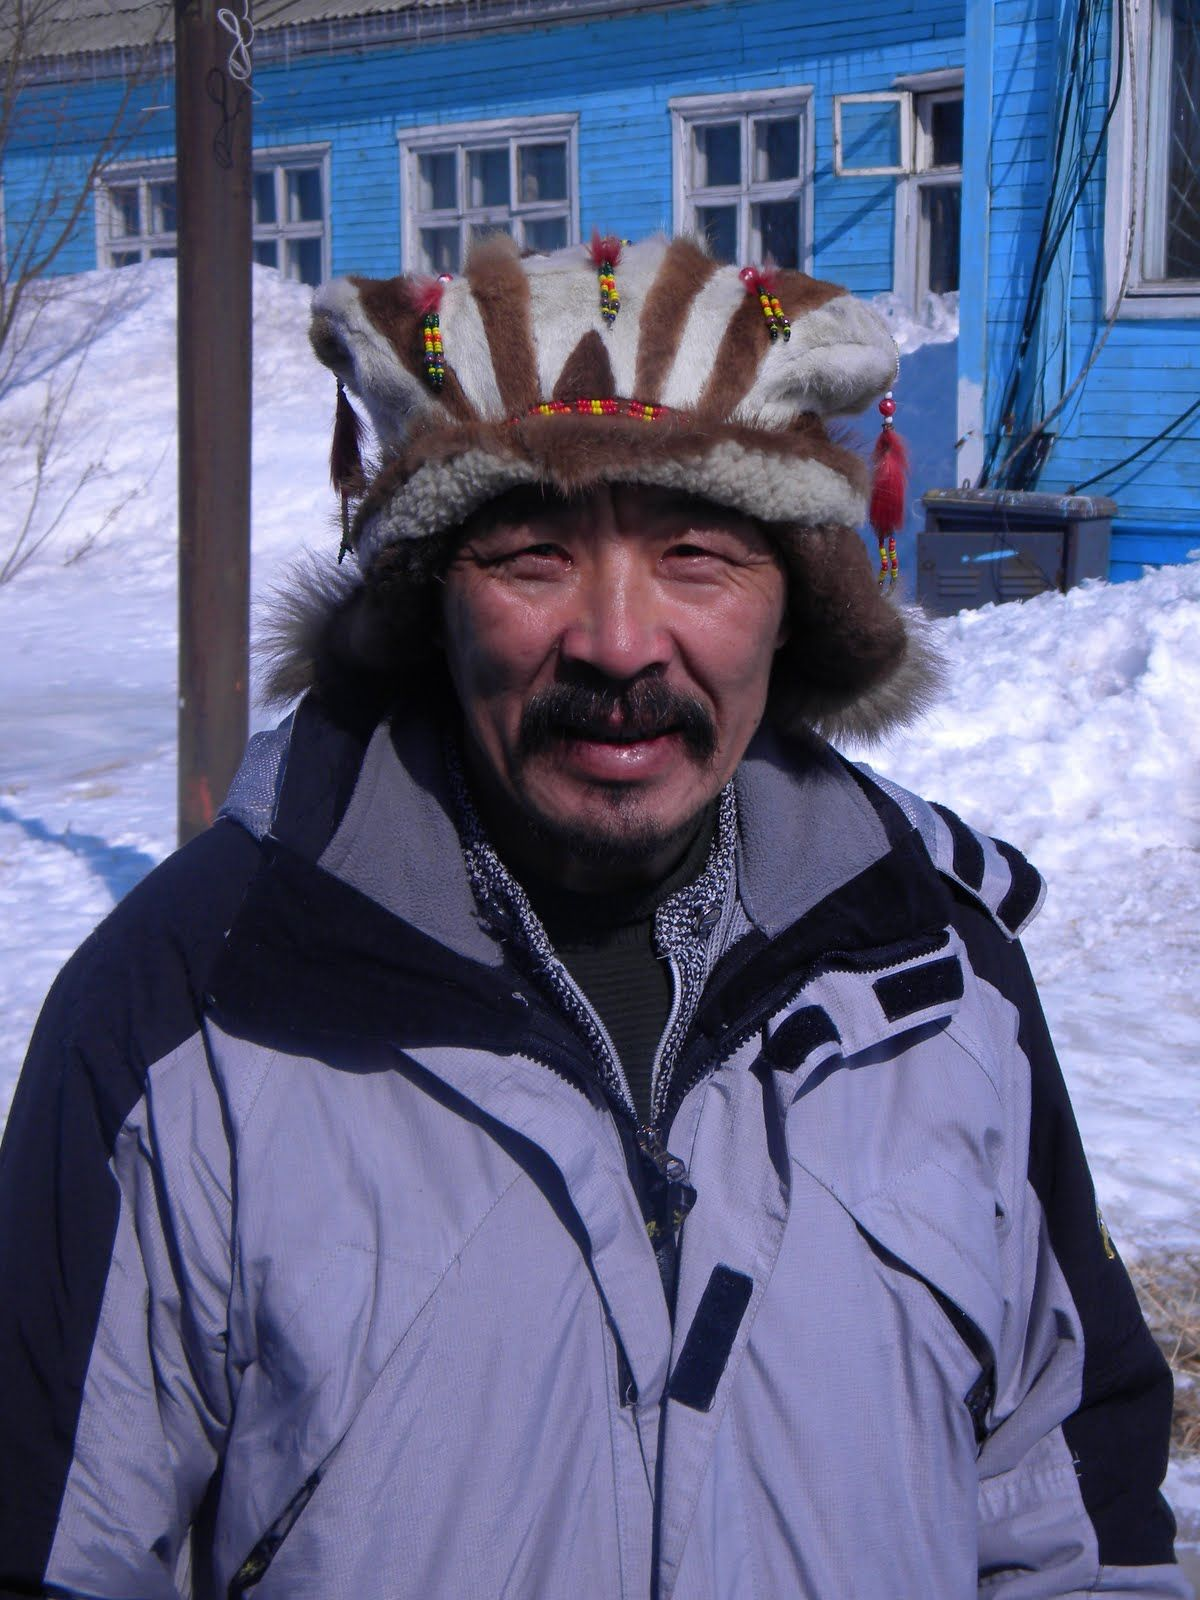 Koryaks (or Koriak) are an indigenous people of Kamchatka Krai in the Russian Far East, who inhabit the coastlands of the Bering Sea to the south of the Anadyr basin and the country to the immediate north of the Kamchatka Peninsula, the southernmost limit of their range being